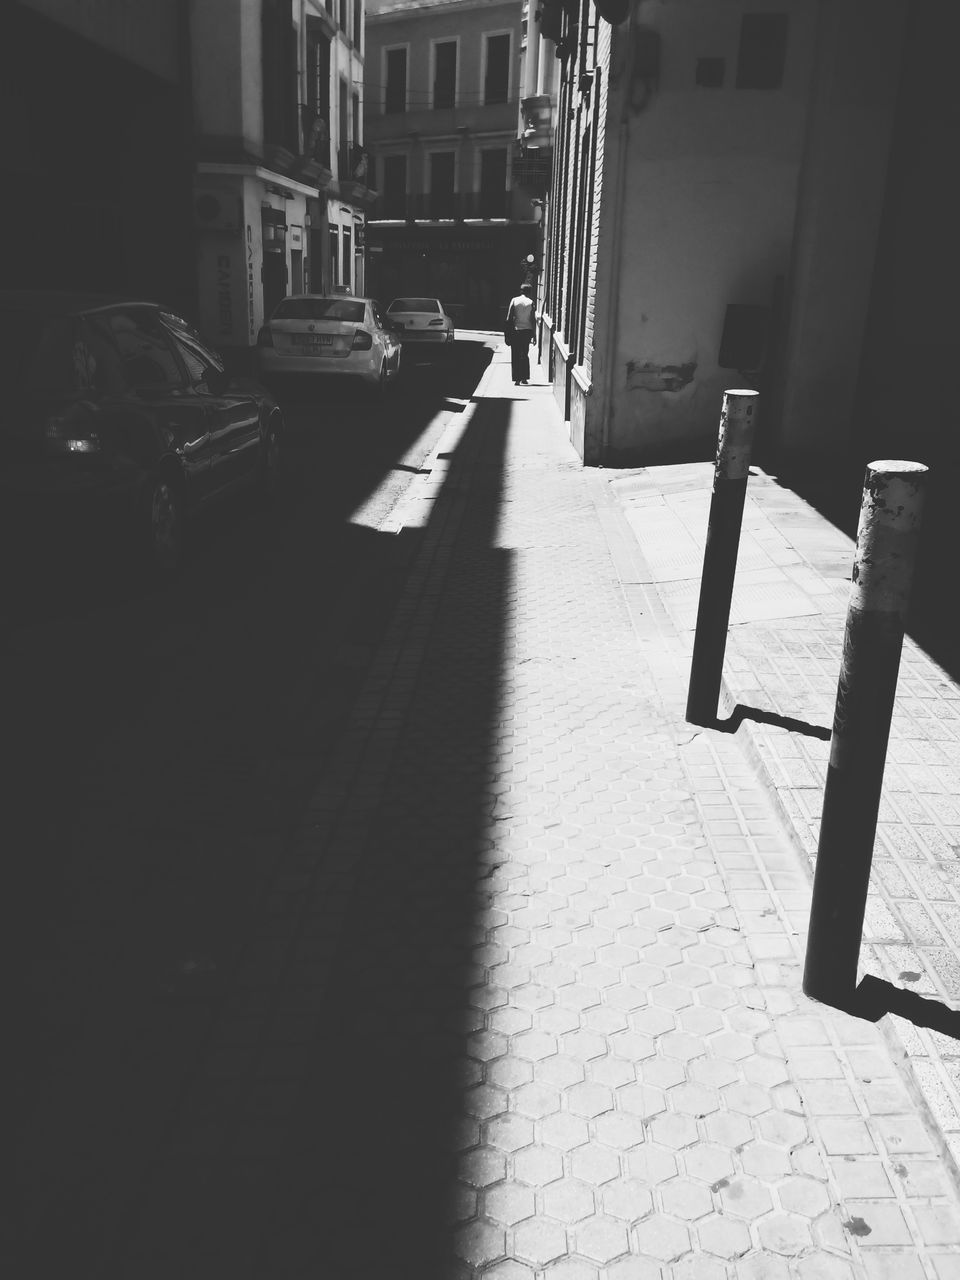 architecture, sunlight, shadow, built structure, building exterior, day, the way forward, outdoors, no people, city